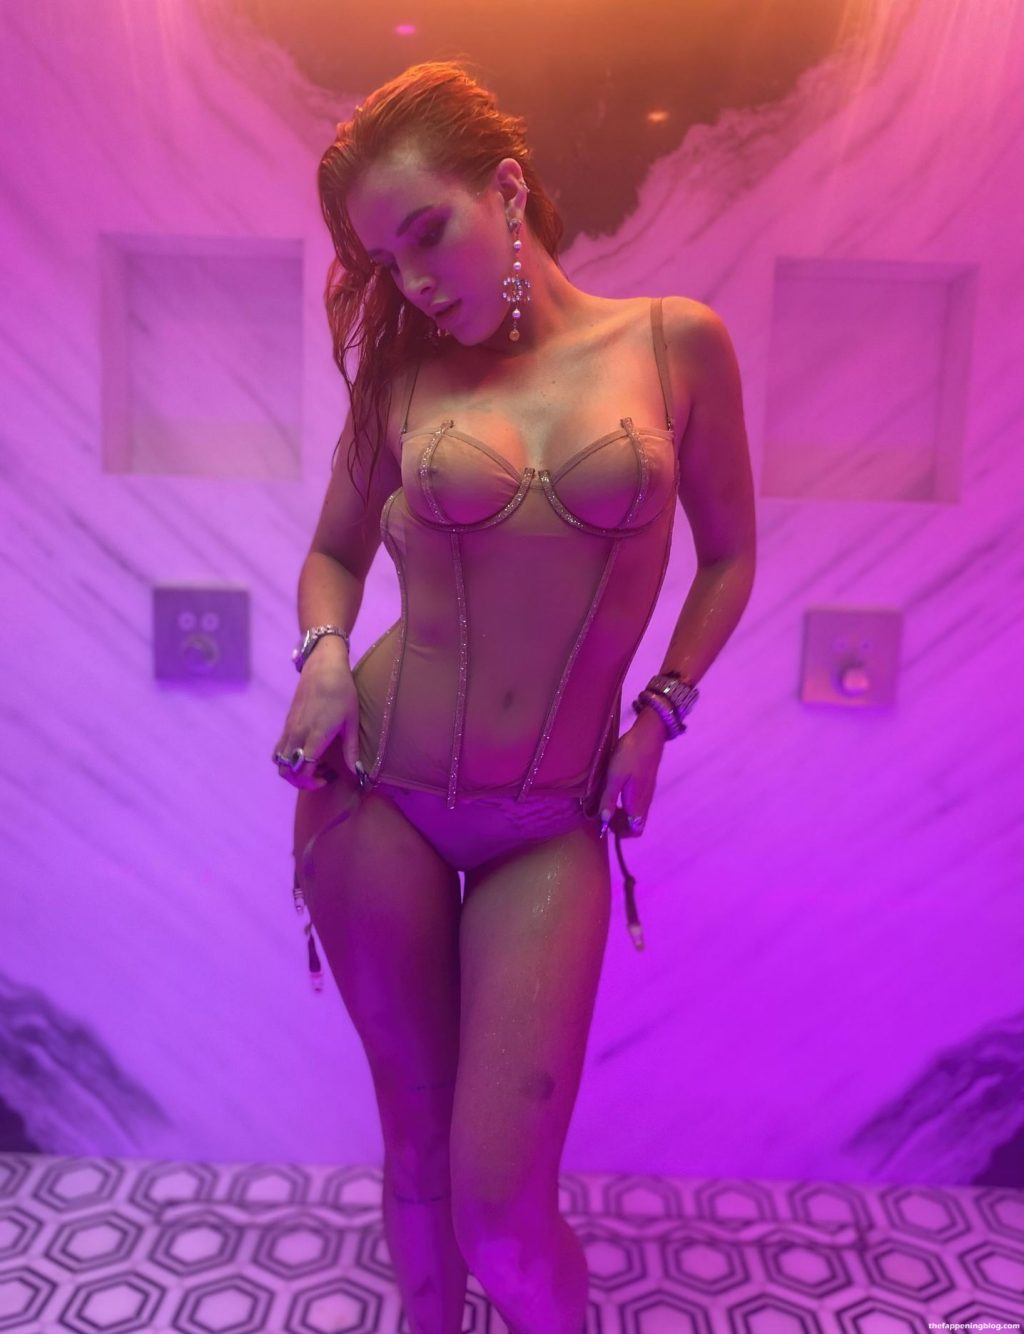 Bella Thorne Looks Hot in a See-Through Lingerie (11 Photos)